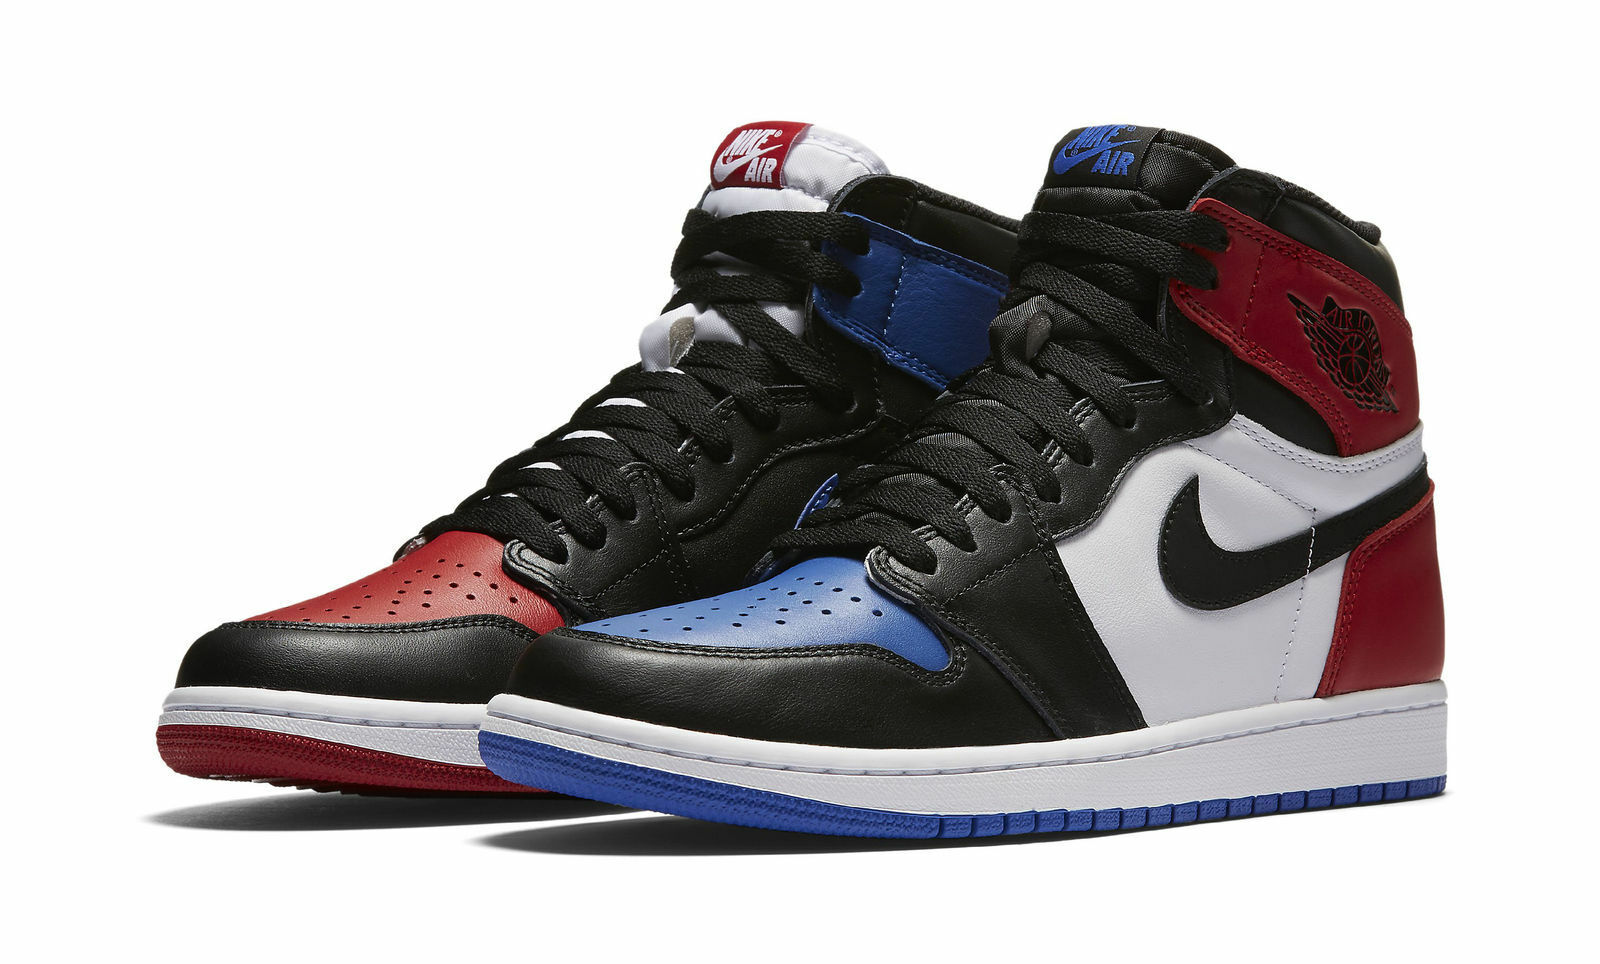 65ec892d2bf Air Jordan 1 Retro High OG Top 3 US 10.5 100 Authentic 555088 026 for sale  online | eBay